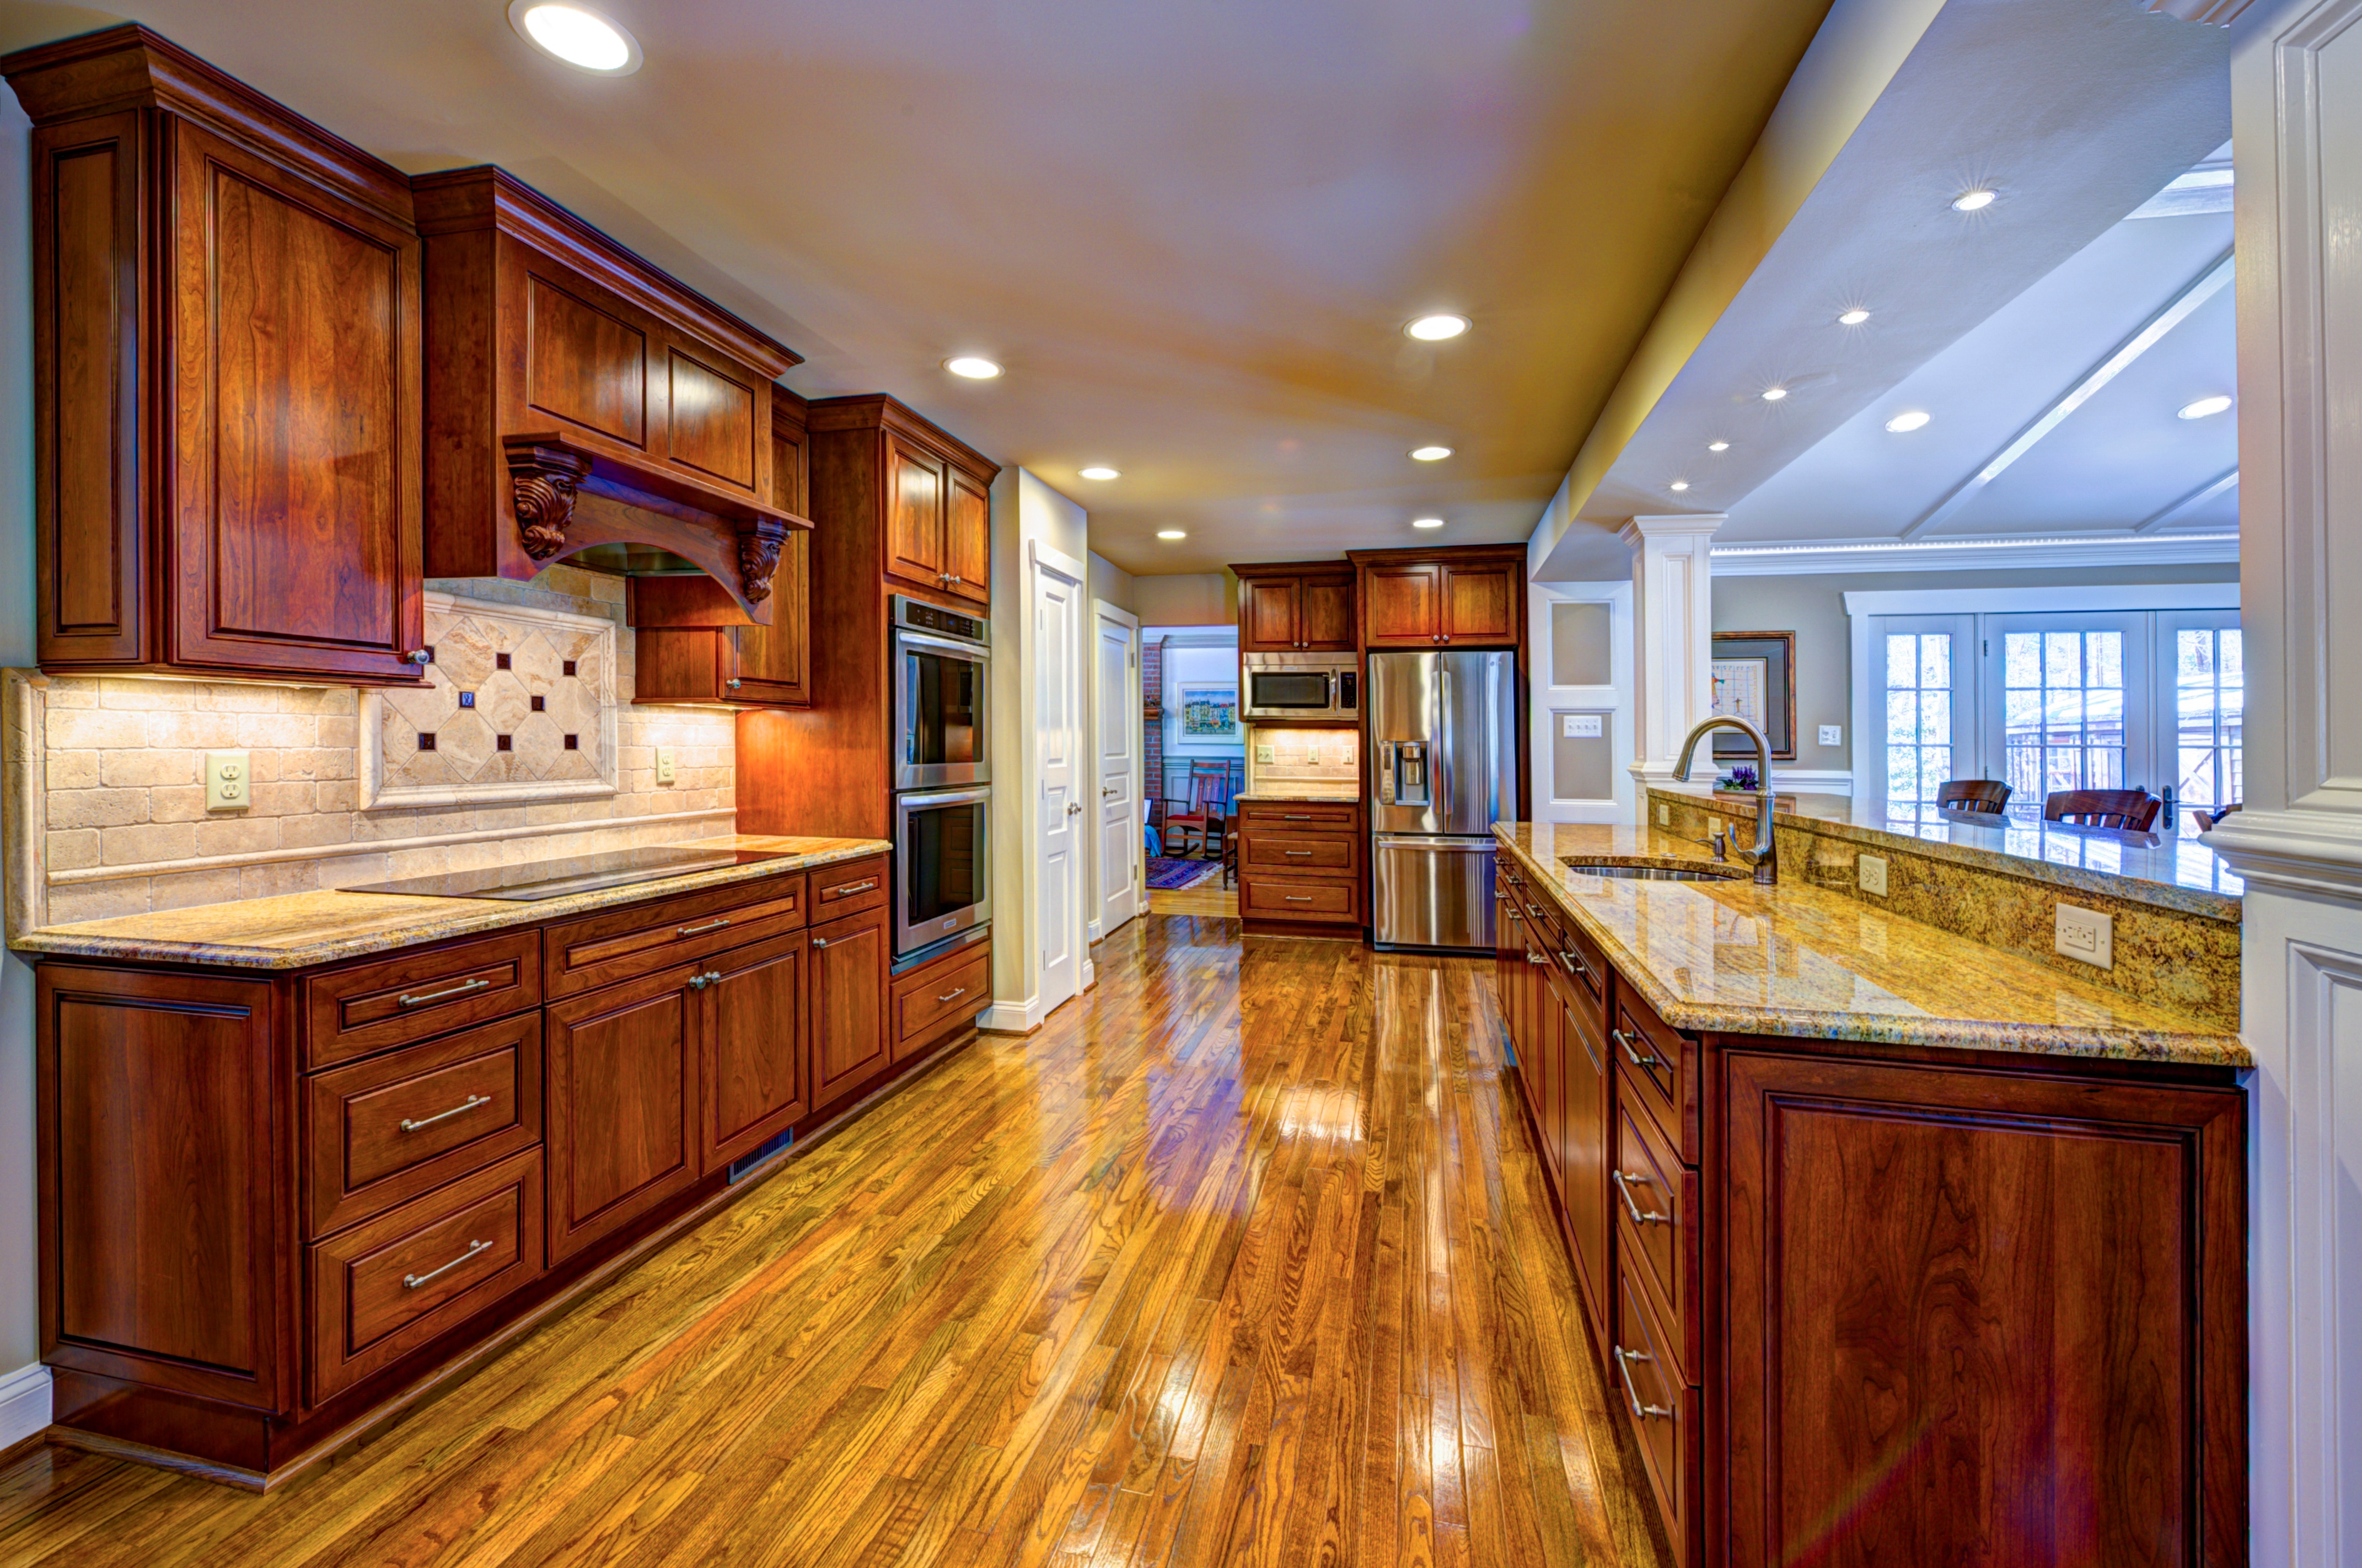 5 Of The Best Kitchen Designs Weve Ever Seen